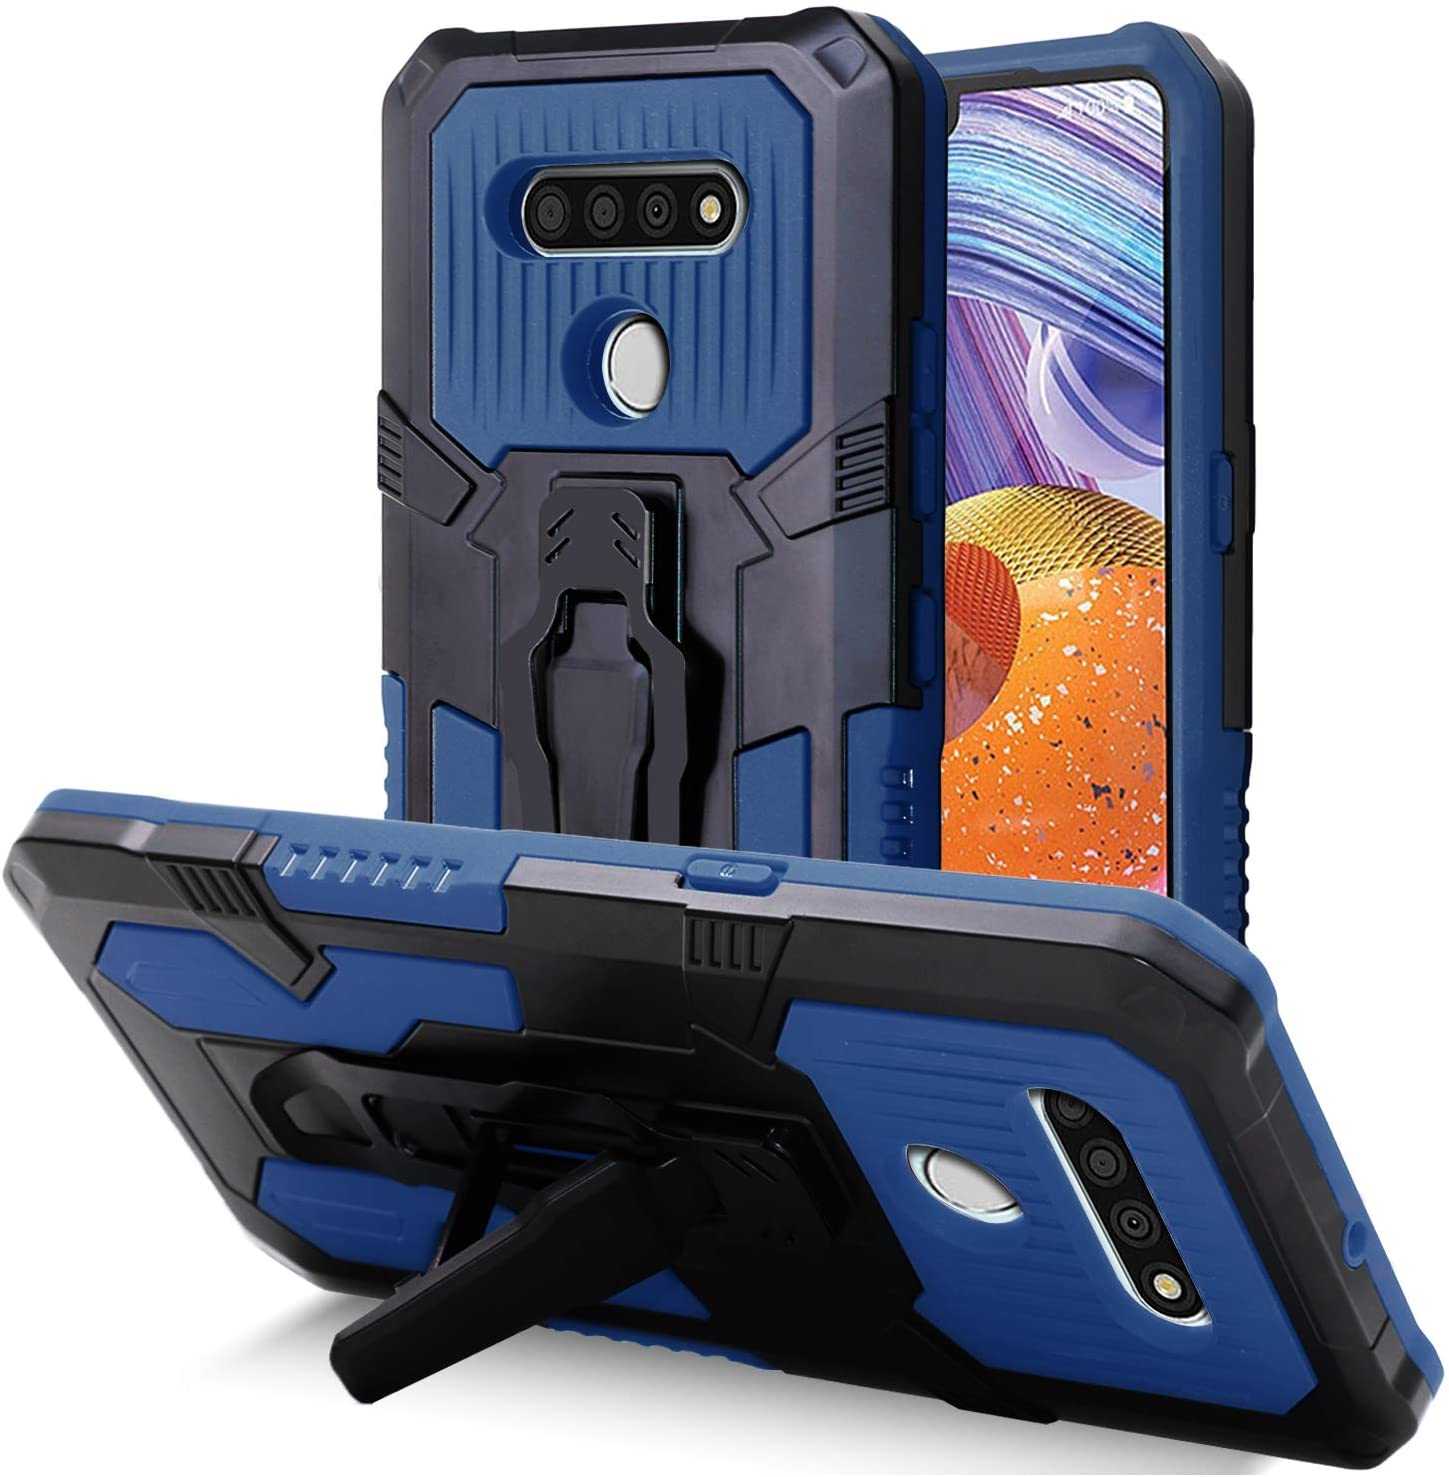 HUIQUAN Case fit for LG Stylo 6, Military Grade Reinforced Built-in Kickstand, Stainless Steel Buckle for Outdoor Activity, Shockproof & Drop Resistance (Navy Blue)